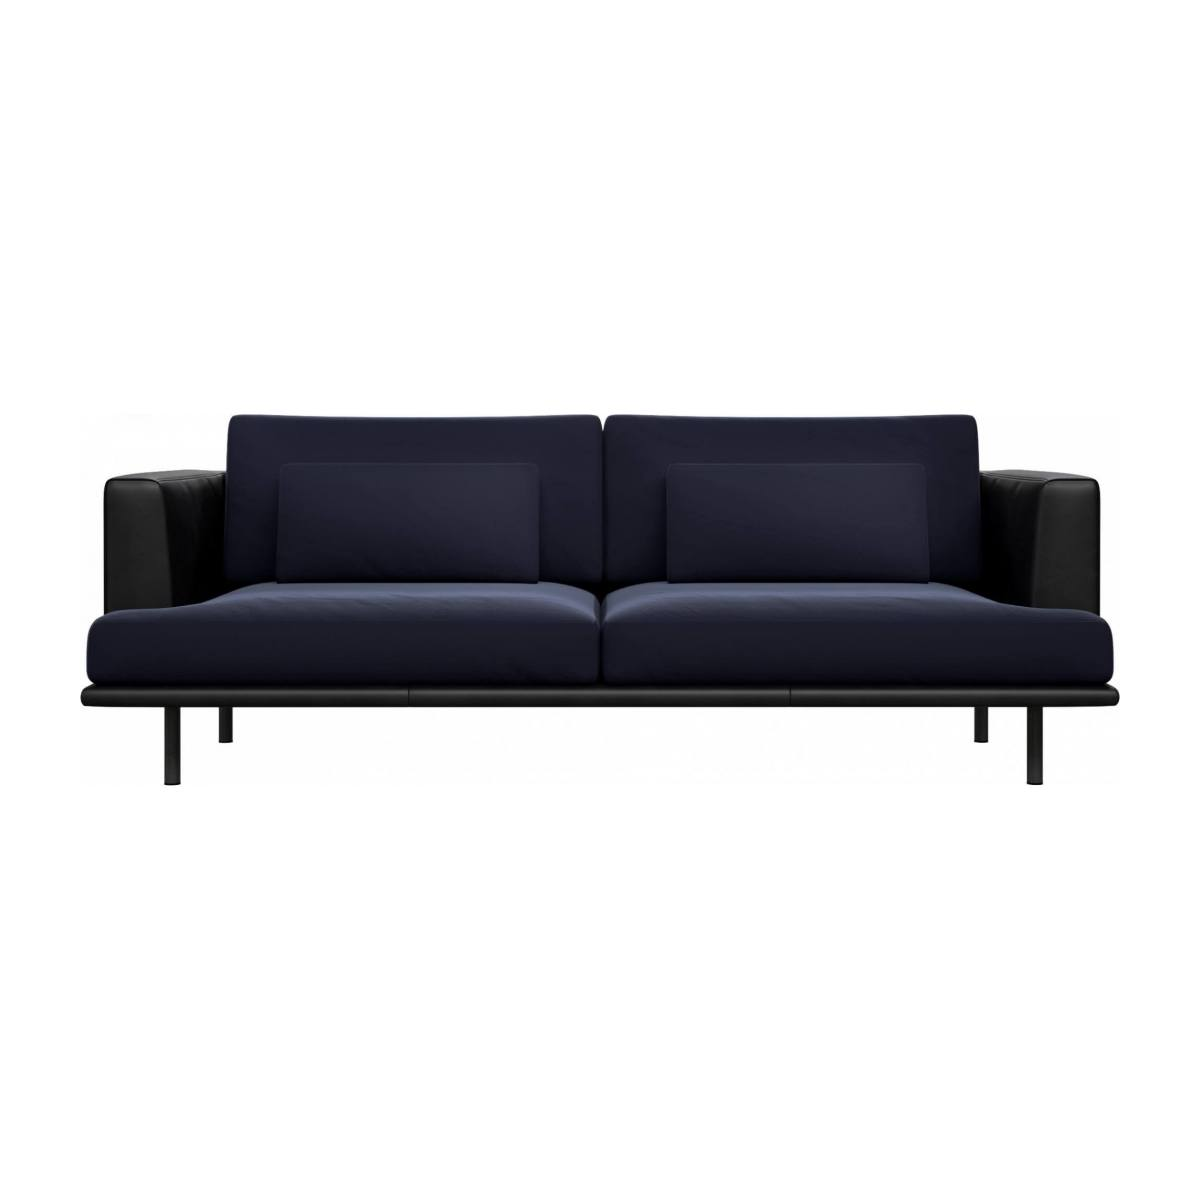 3 seater sofa in Super Velvet fabric, dark blue with base and armrests in black leather n°1